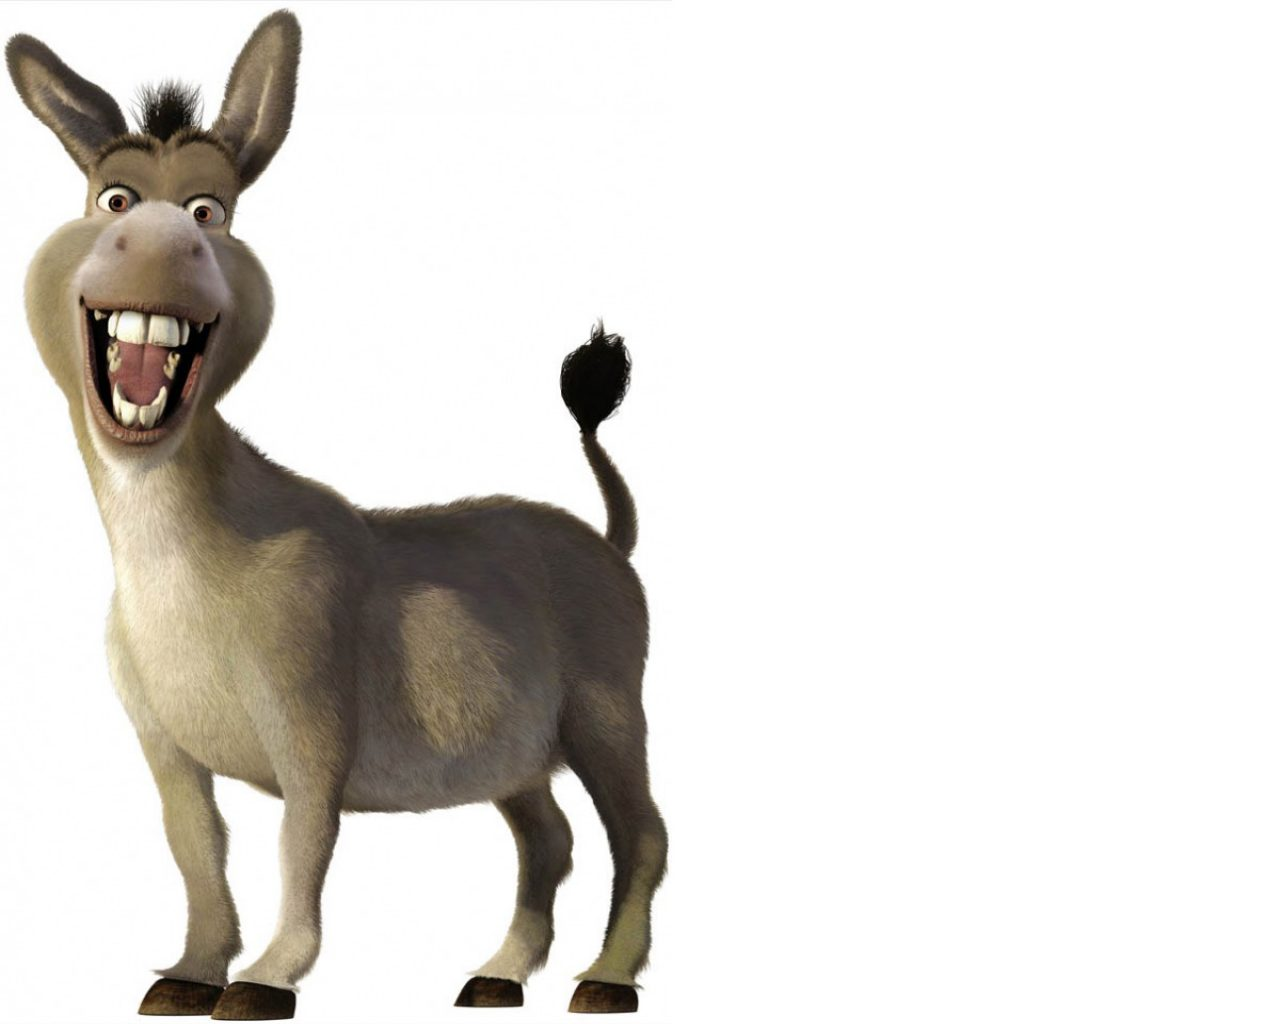 Shrek Donkey Clipart at GetDrawings.com | Free for personal use ...